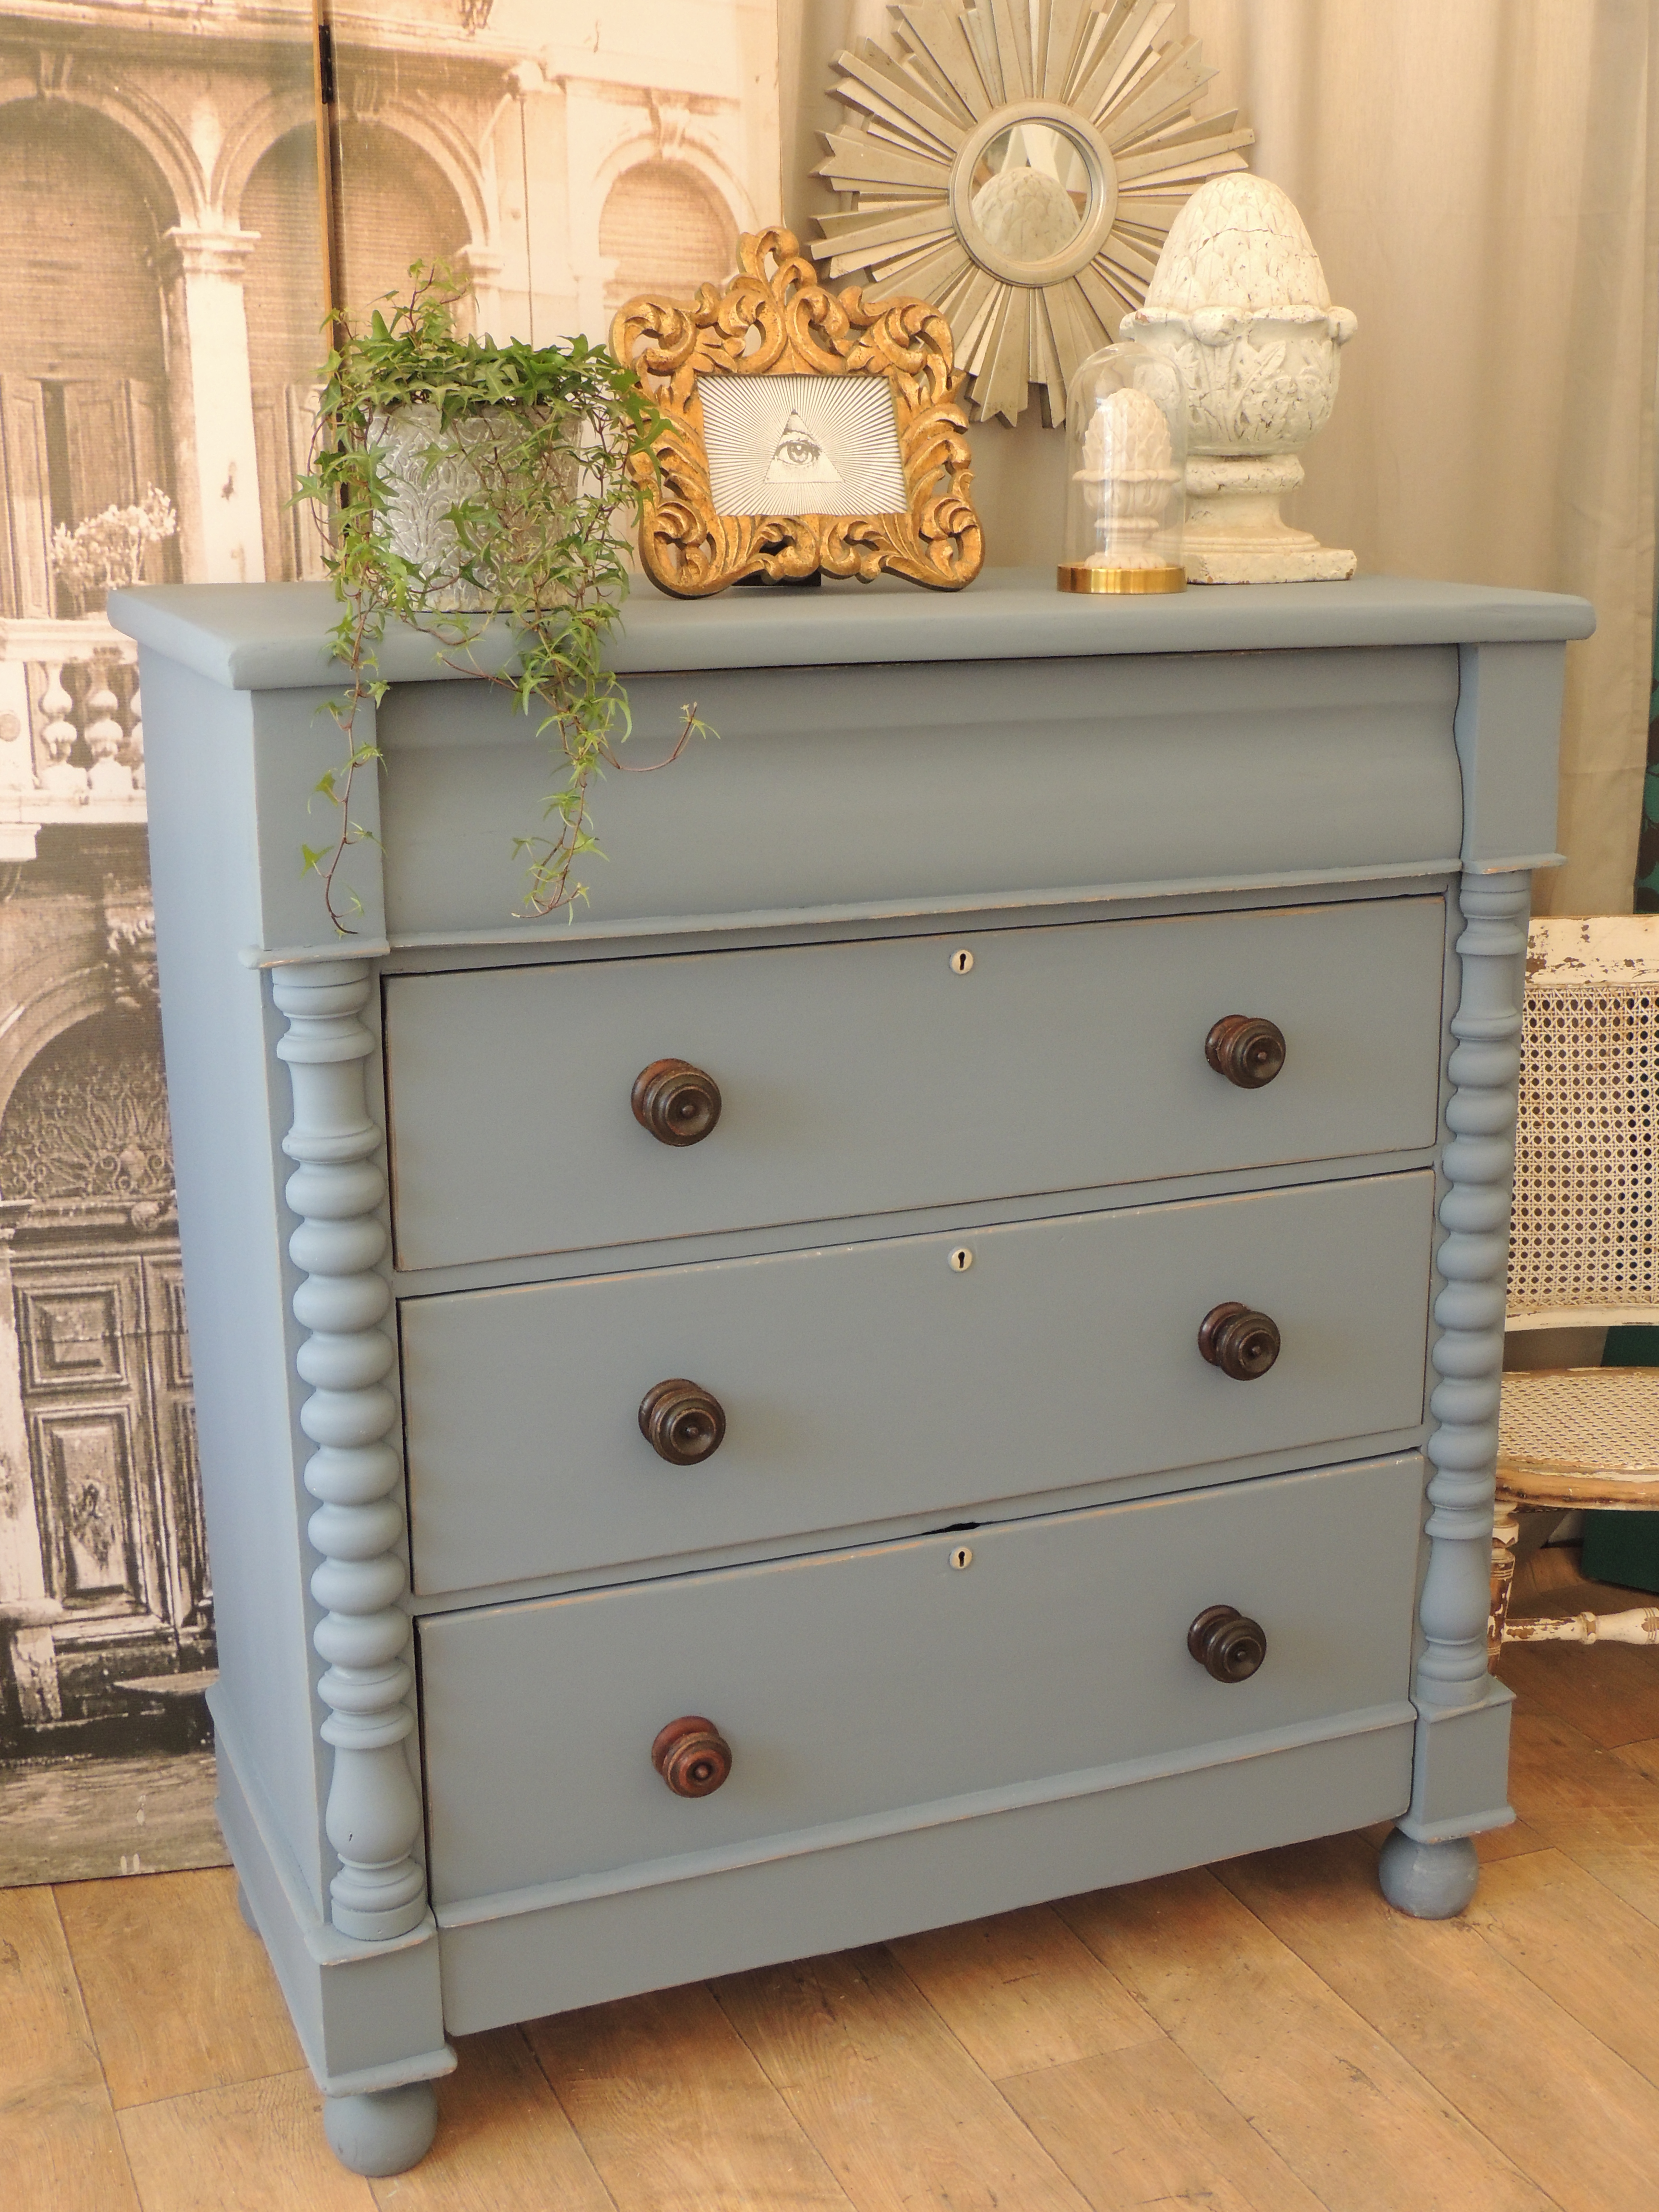 sunset cabinet chic collection trading of page drawers category chest wwrw product cc cottage shabby